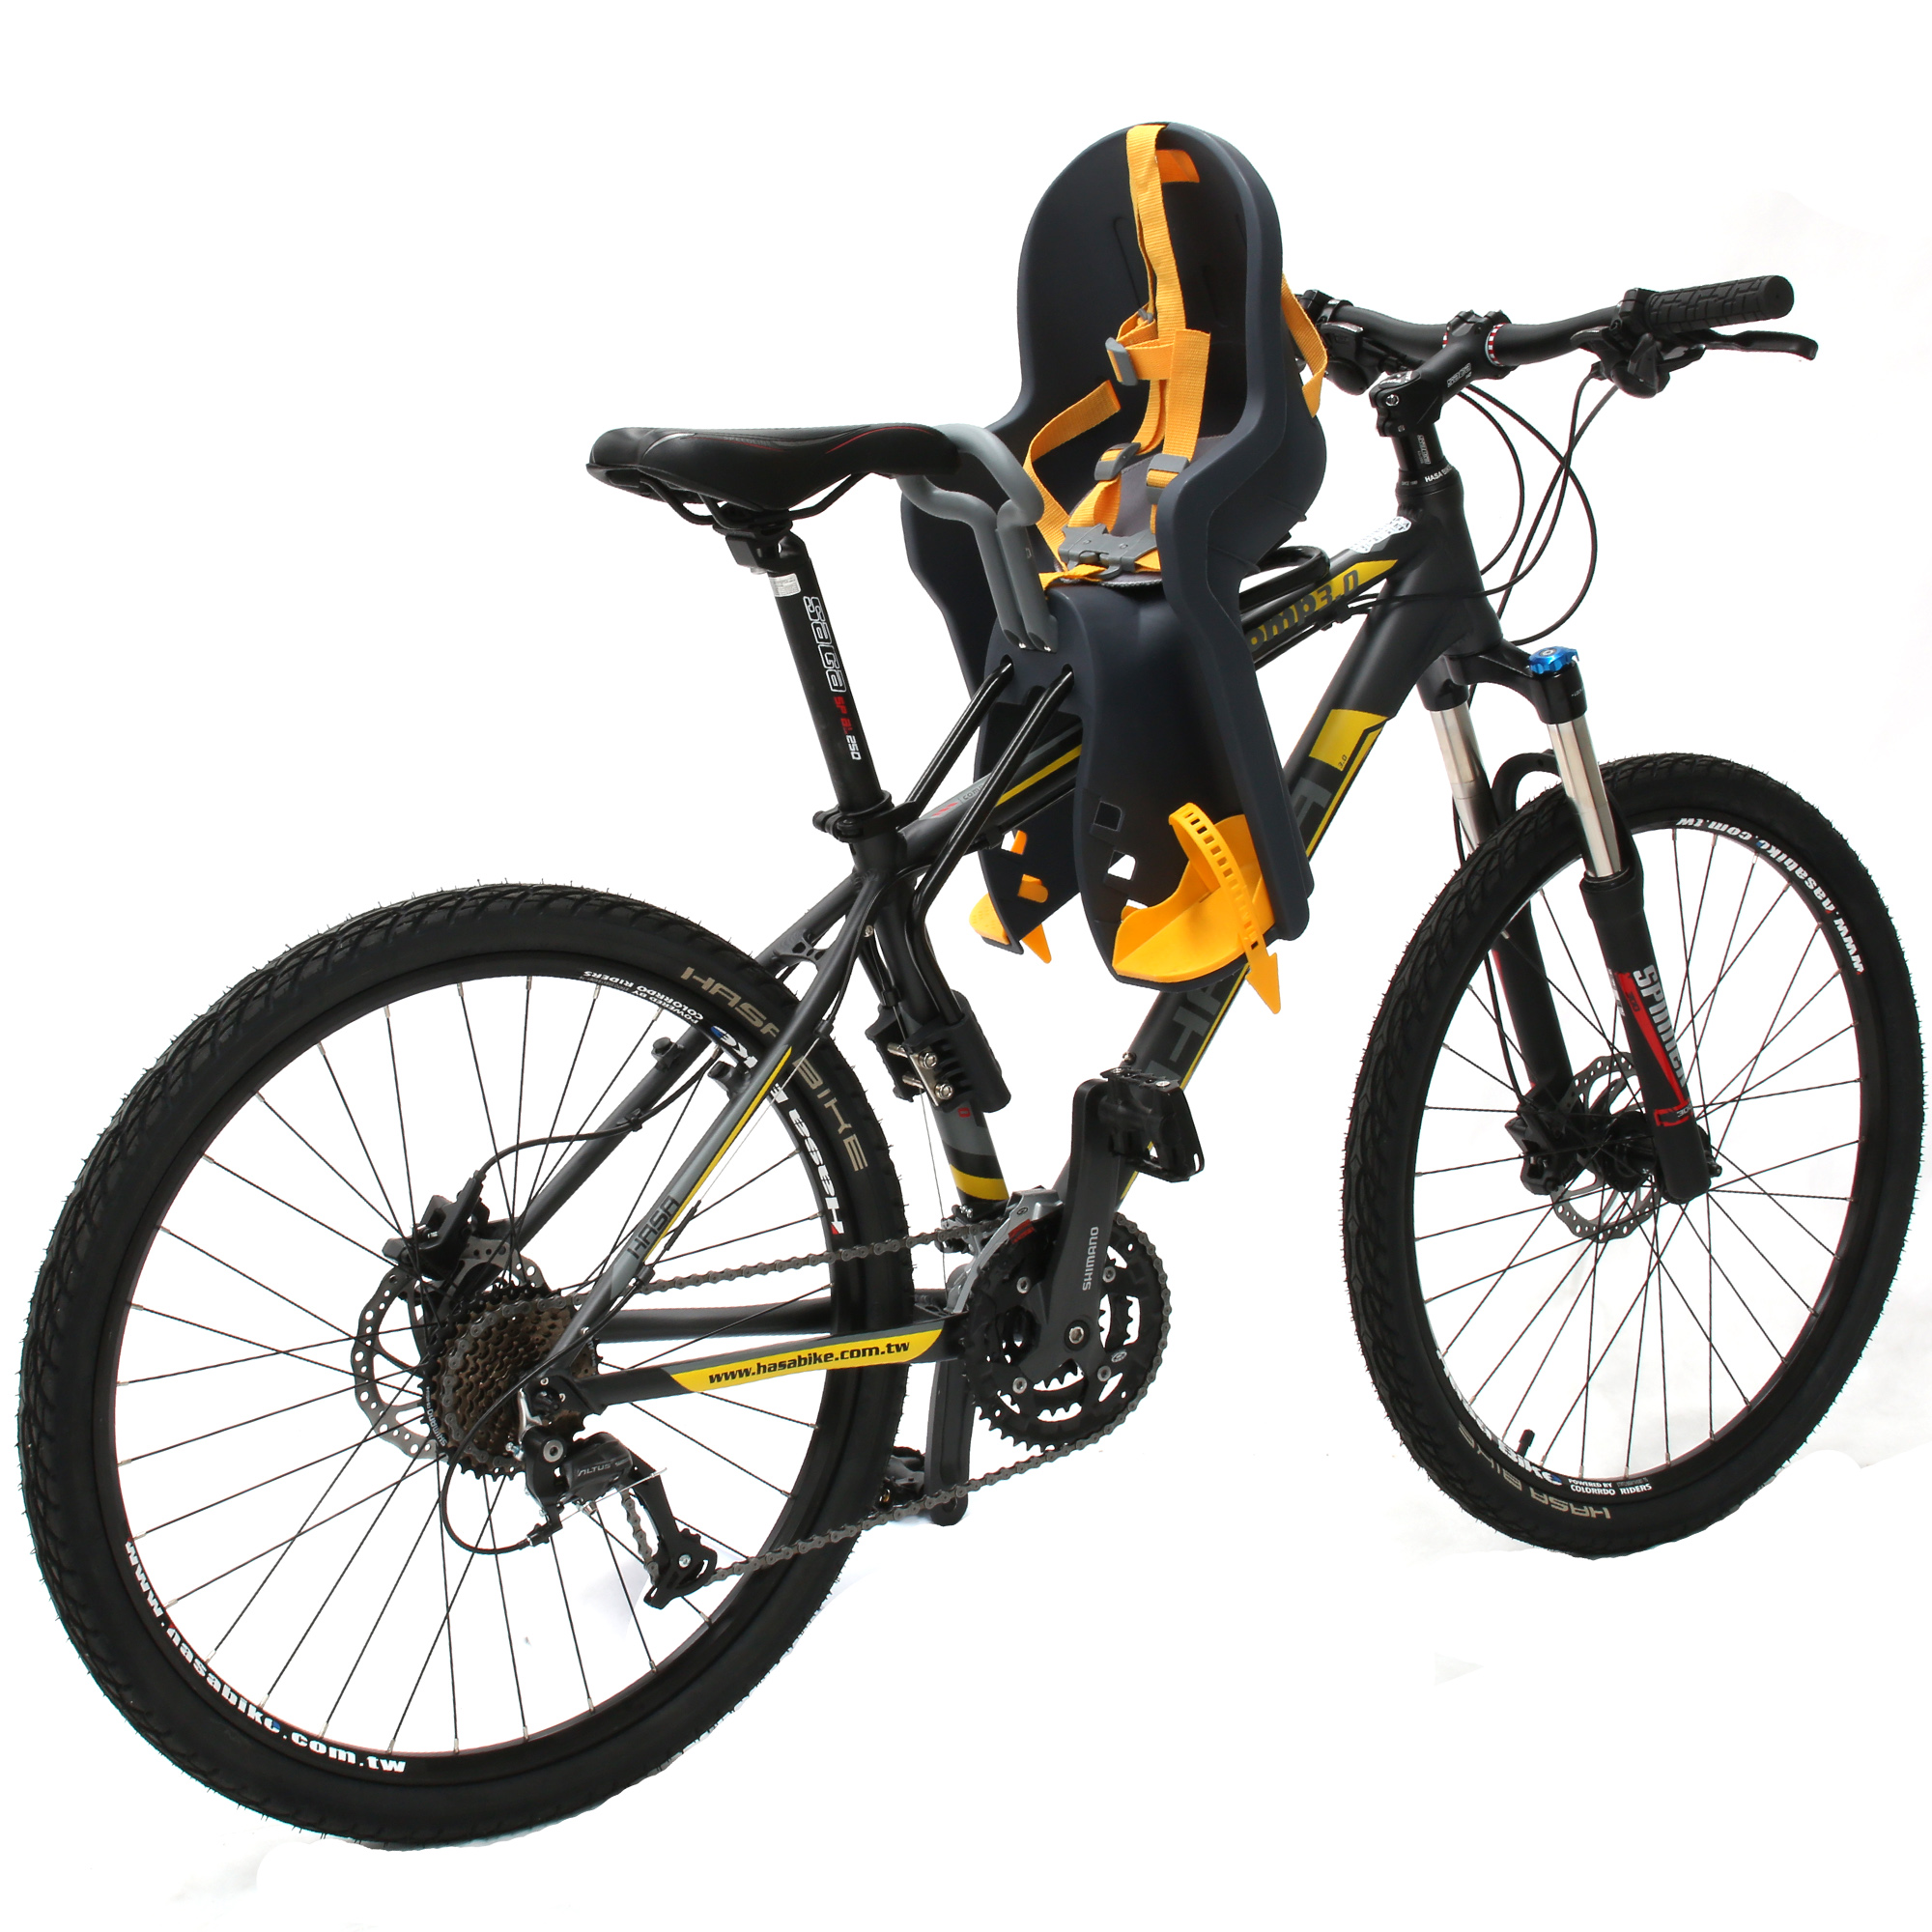 Le Meilleur Bicycle Kids Child Front Baby Seat Bike Carrier Usa Ce Mois Ci